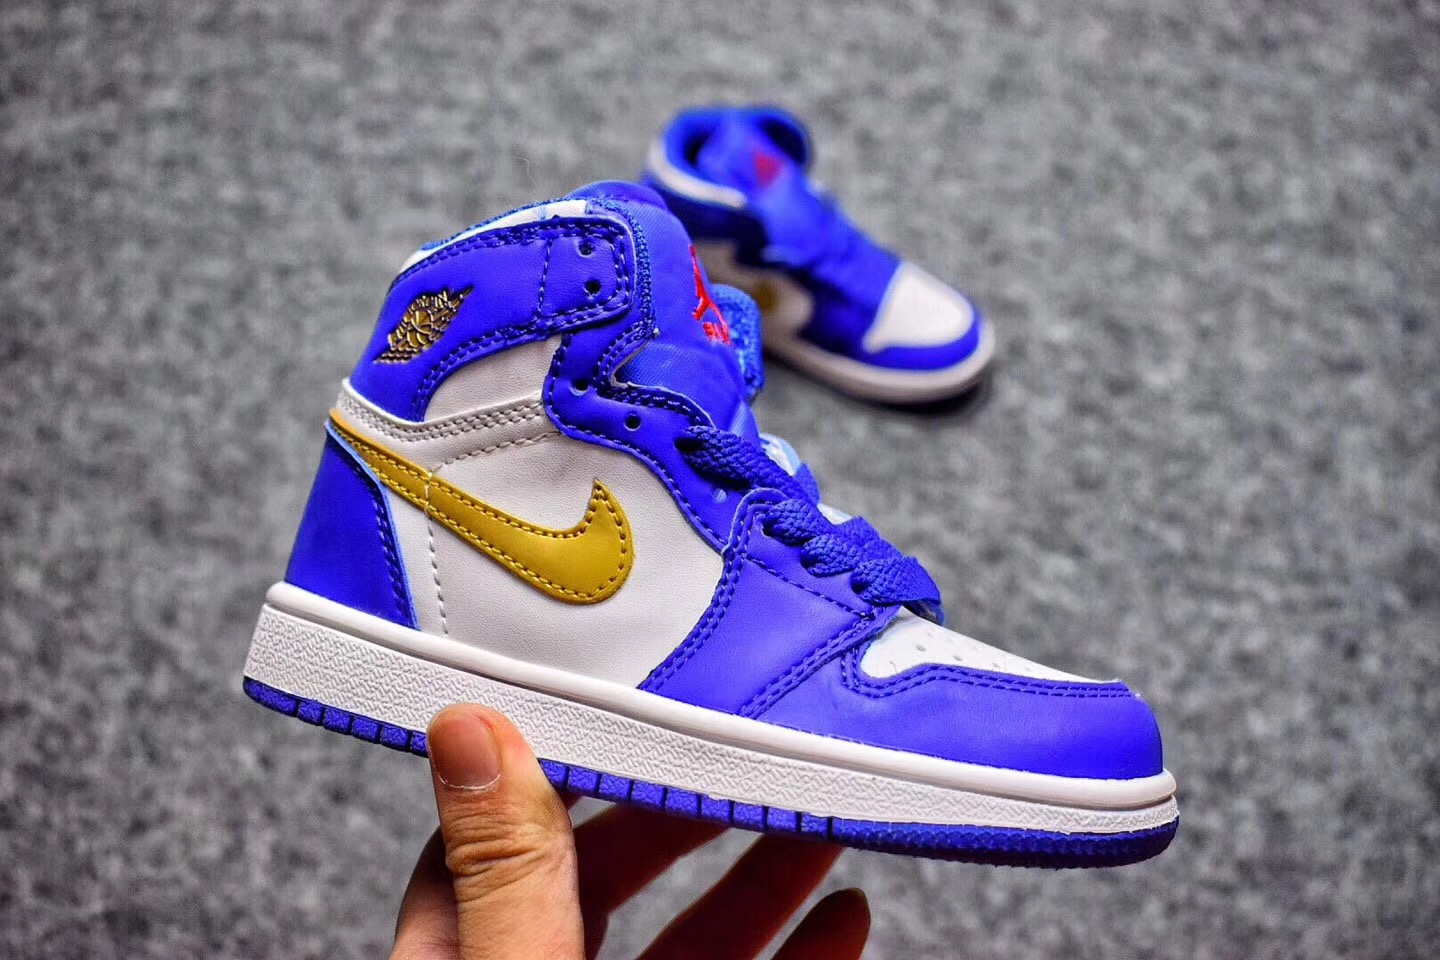 newest 038db 46127 Prev Nike Air Jordan I 1 Retro Kid Shoes Blue White Gold 575441. Zoom. Move  your mouse over image or click to enlarge. Next. CLICK IMAGE TO ENLARGE